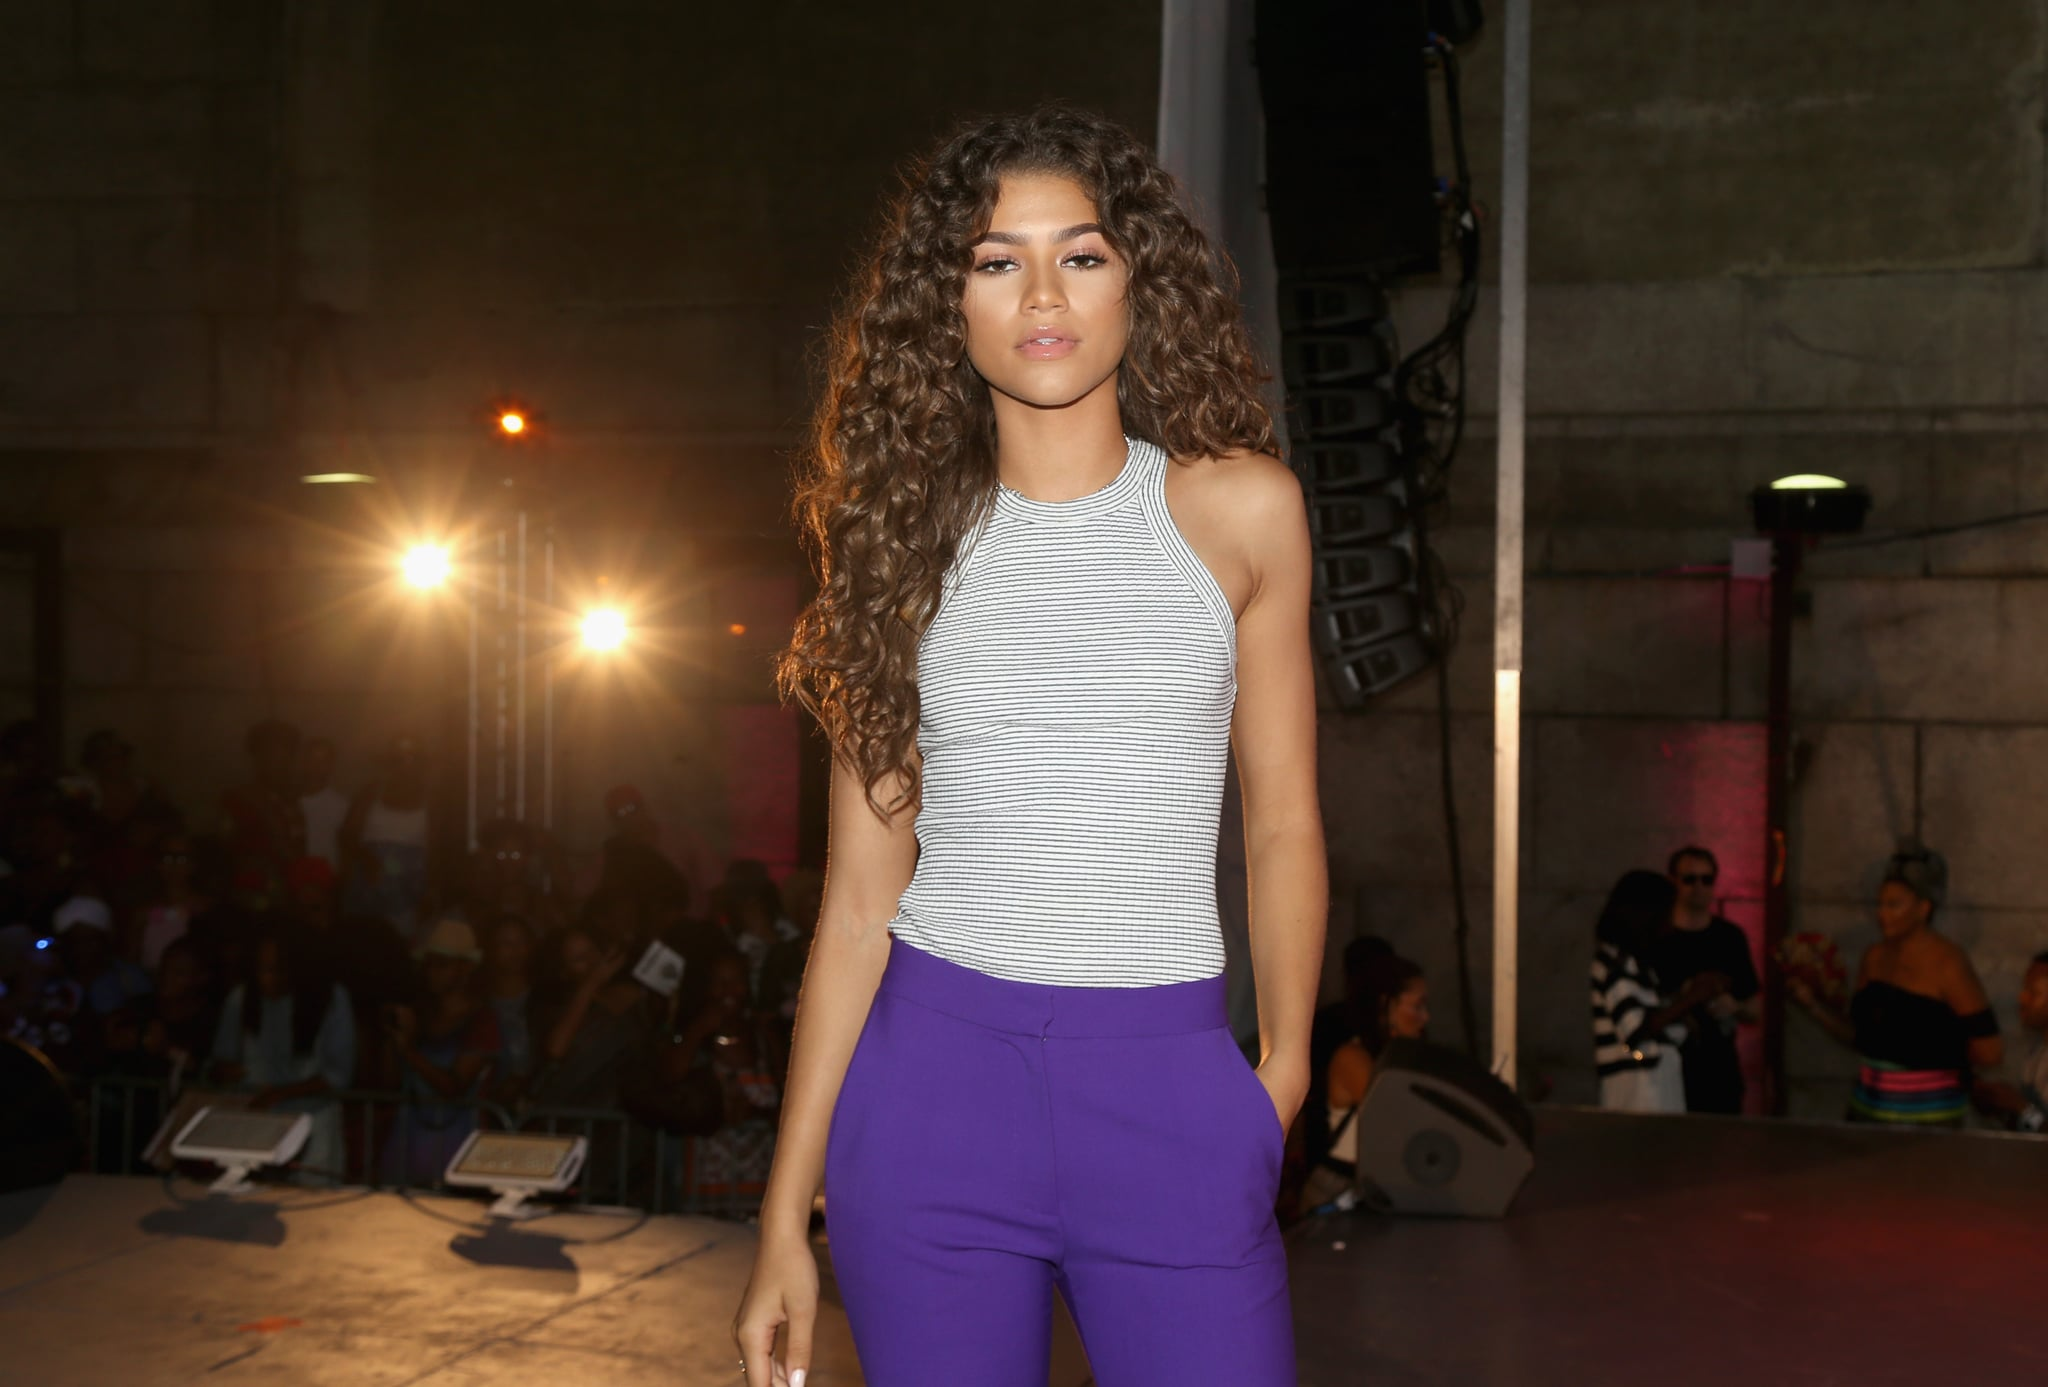 Interview with zendaya march 2017 popsugar celebrity share this link stopboris Choice Image